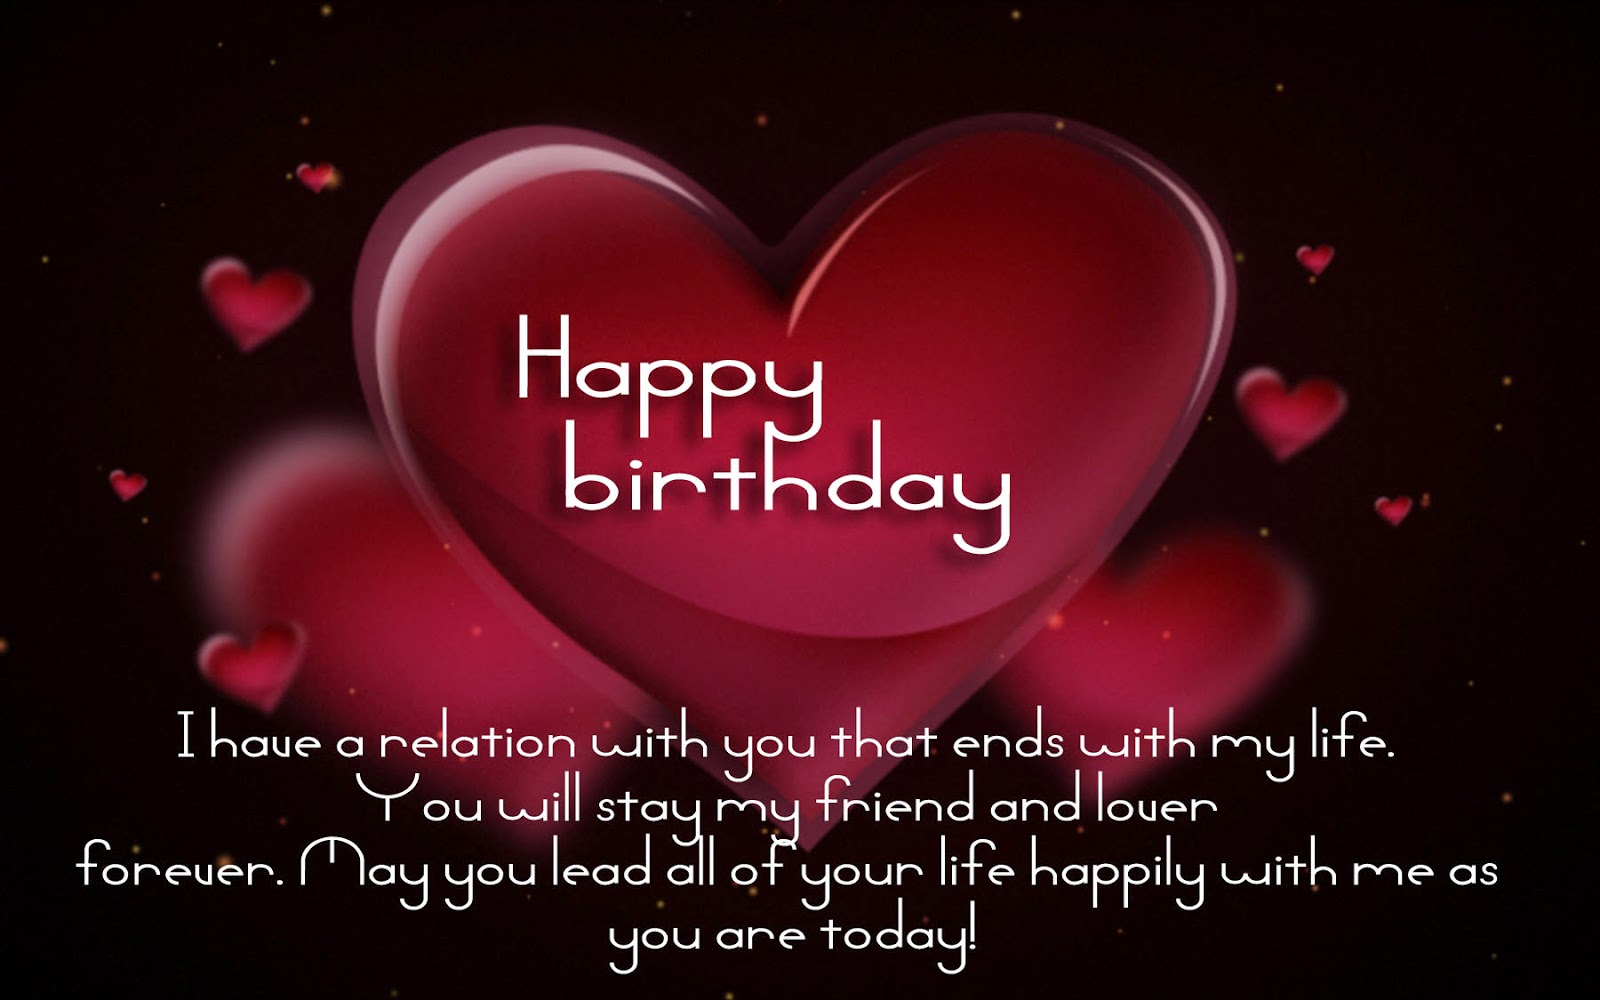 birthday wishes wallpaper hd ; happy-birthday-wishes-quotes-hd-image-free-hd-wallpaper